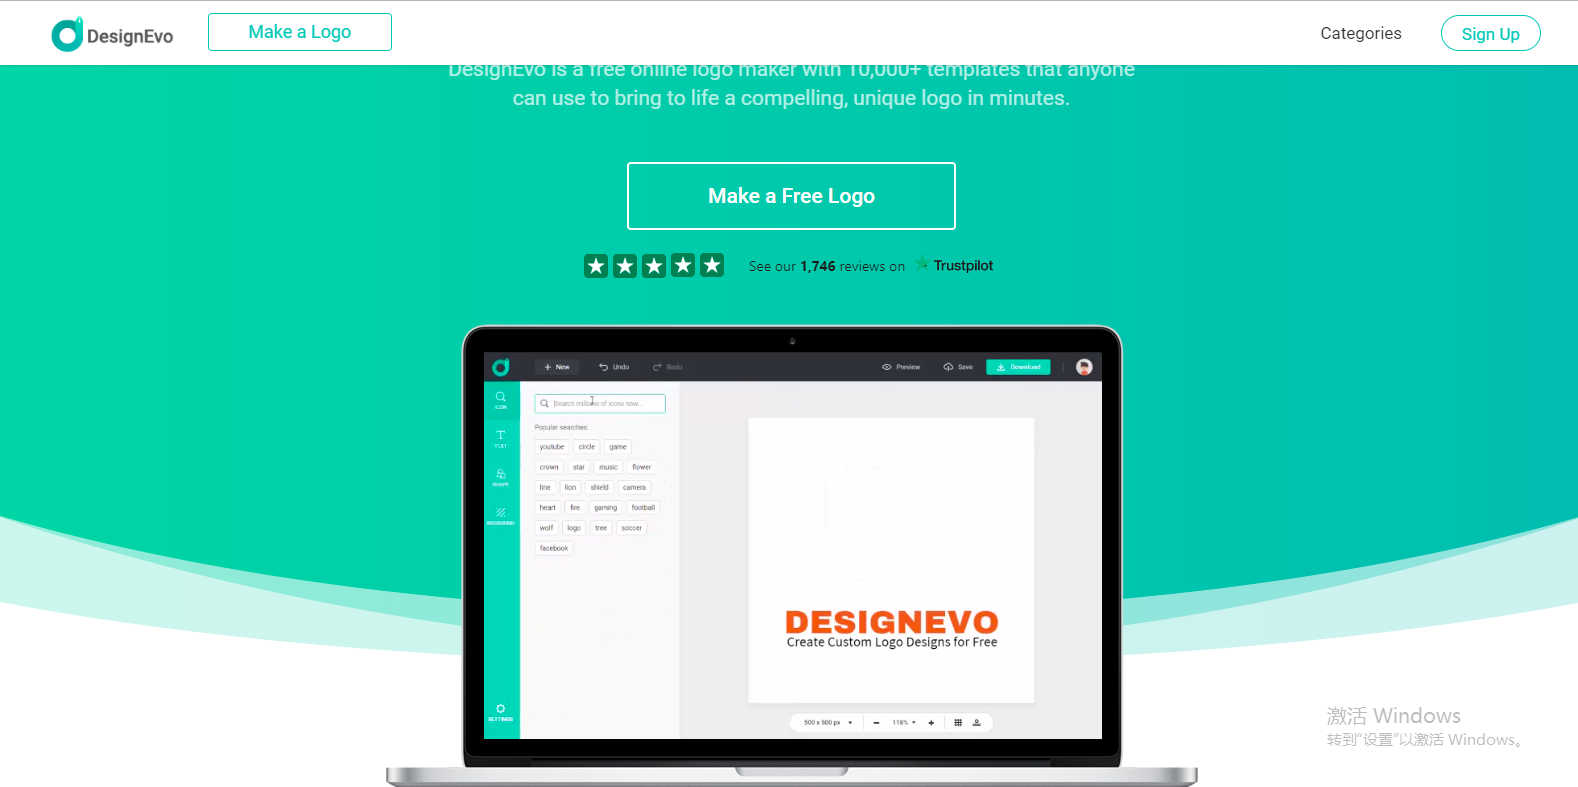 Design Logos Online with DesignEvo